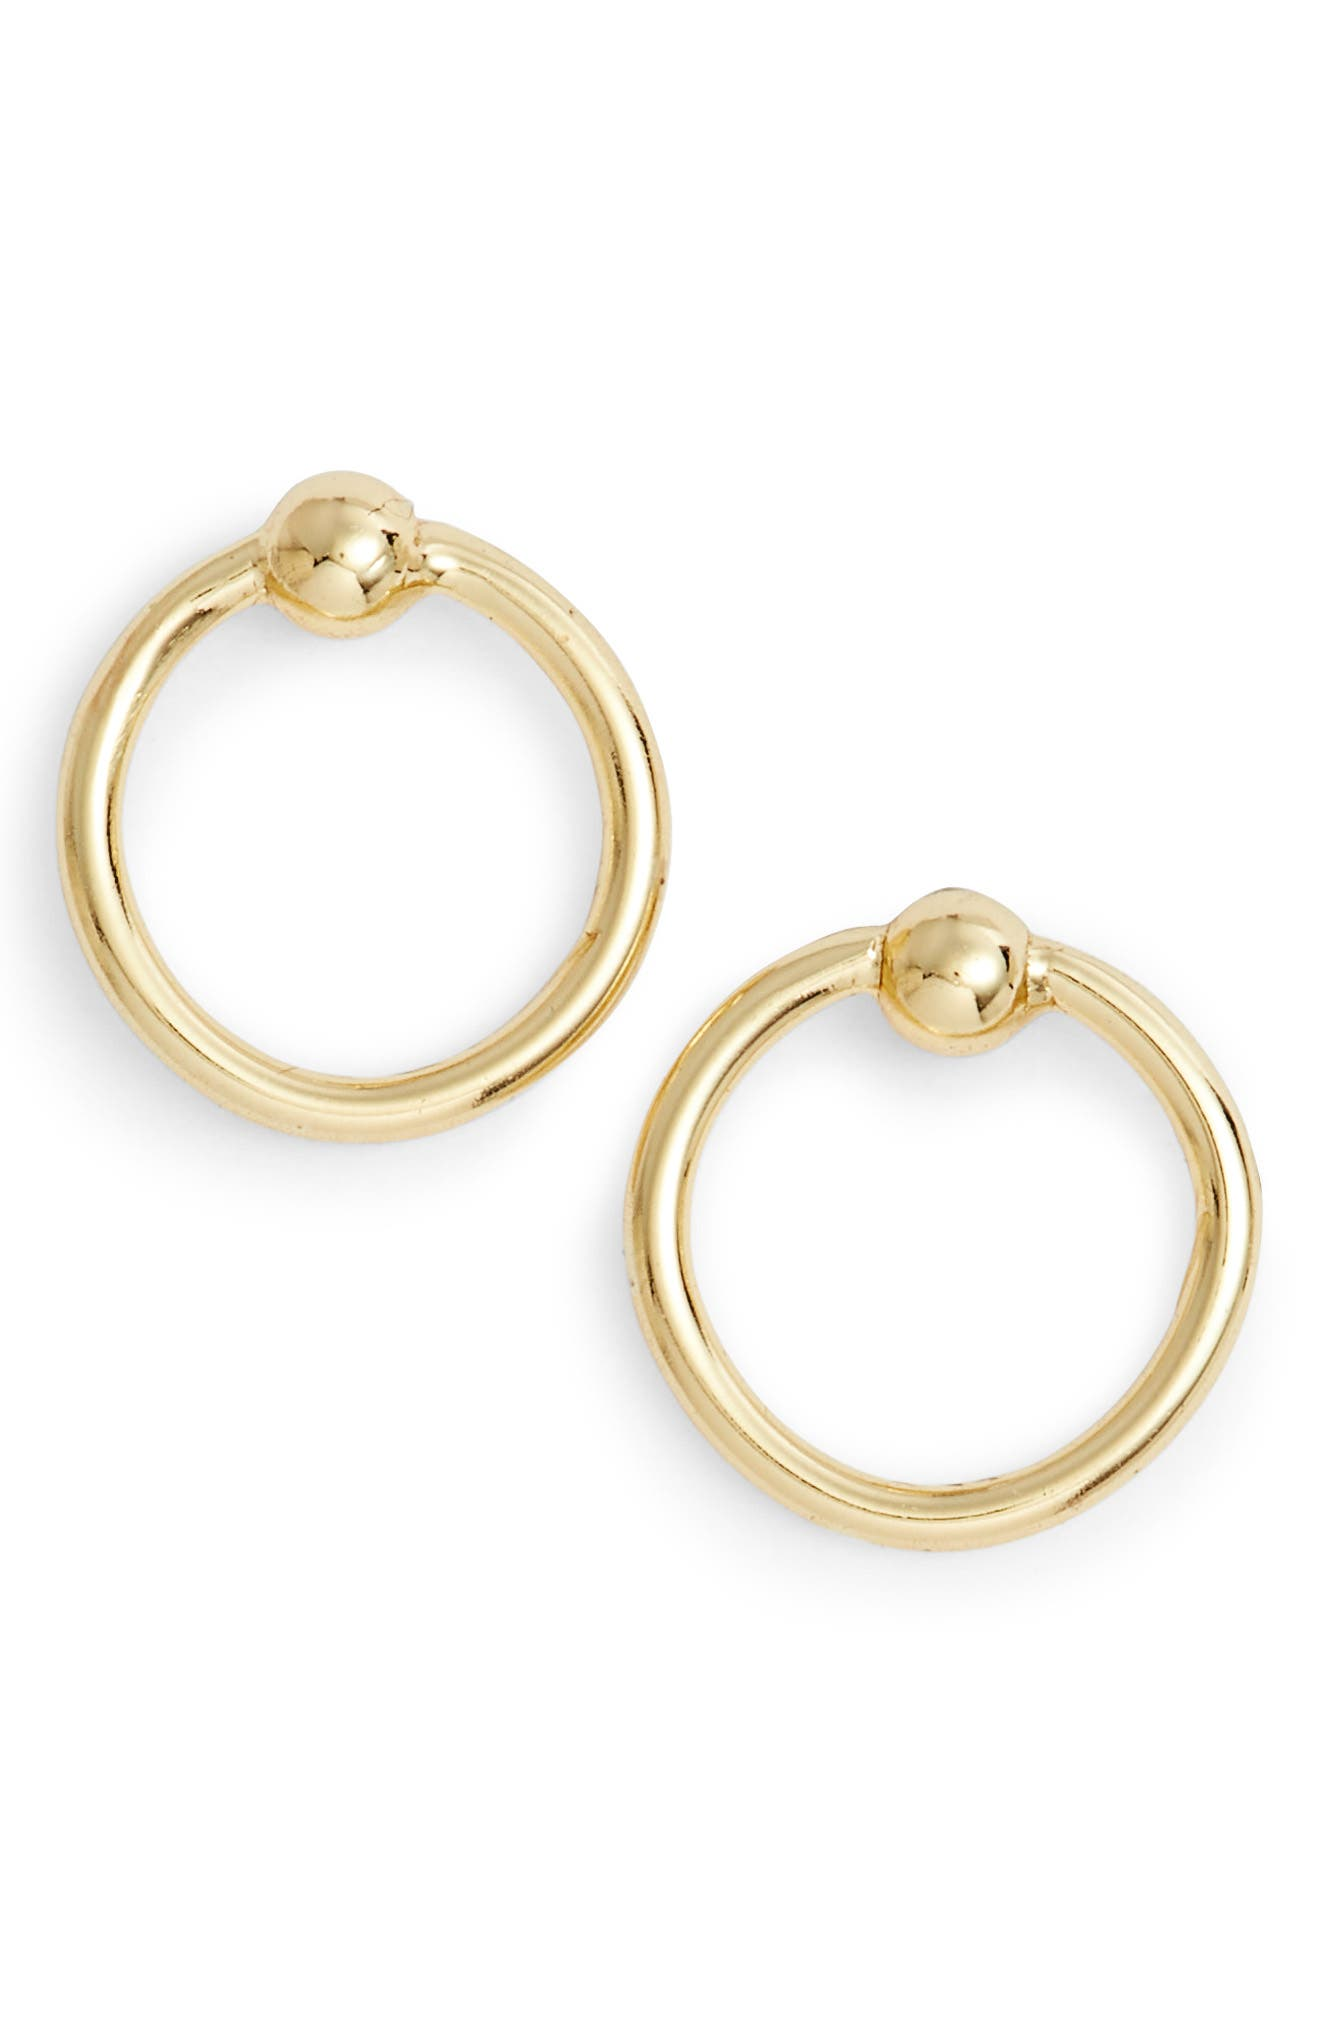 Stationed Open Ring Stud Earrings,                             Main thumbnail 1, color,                             Gold